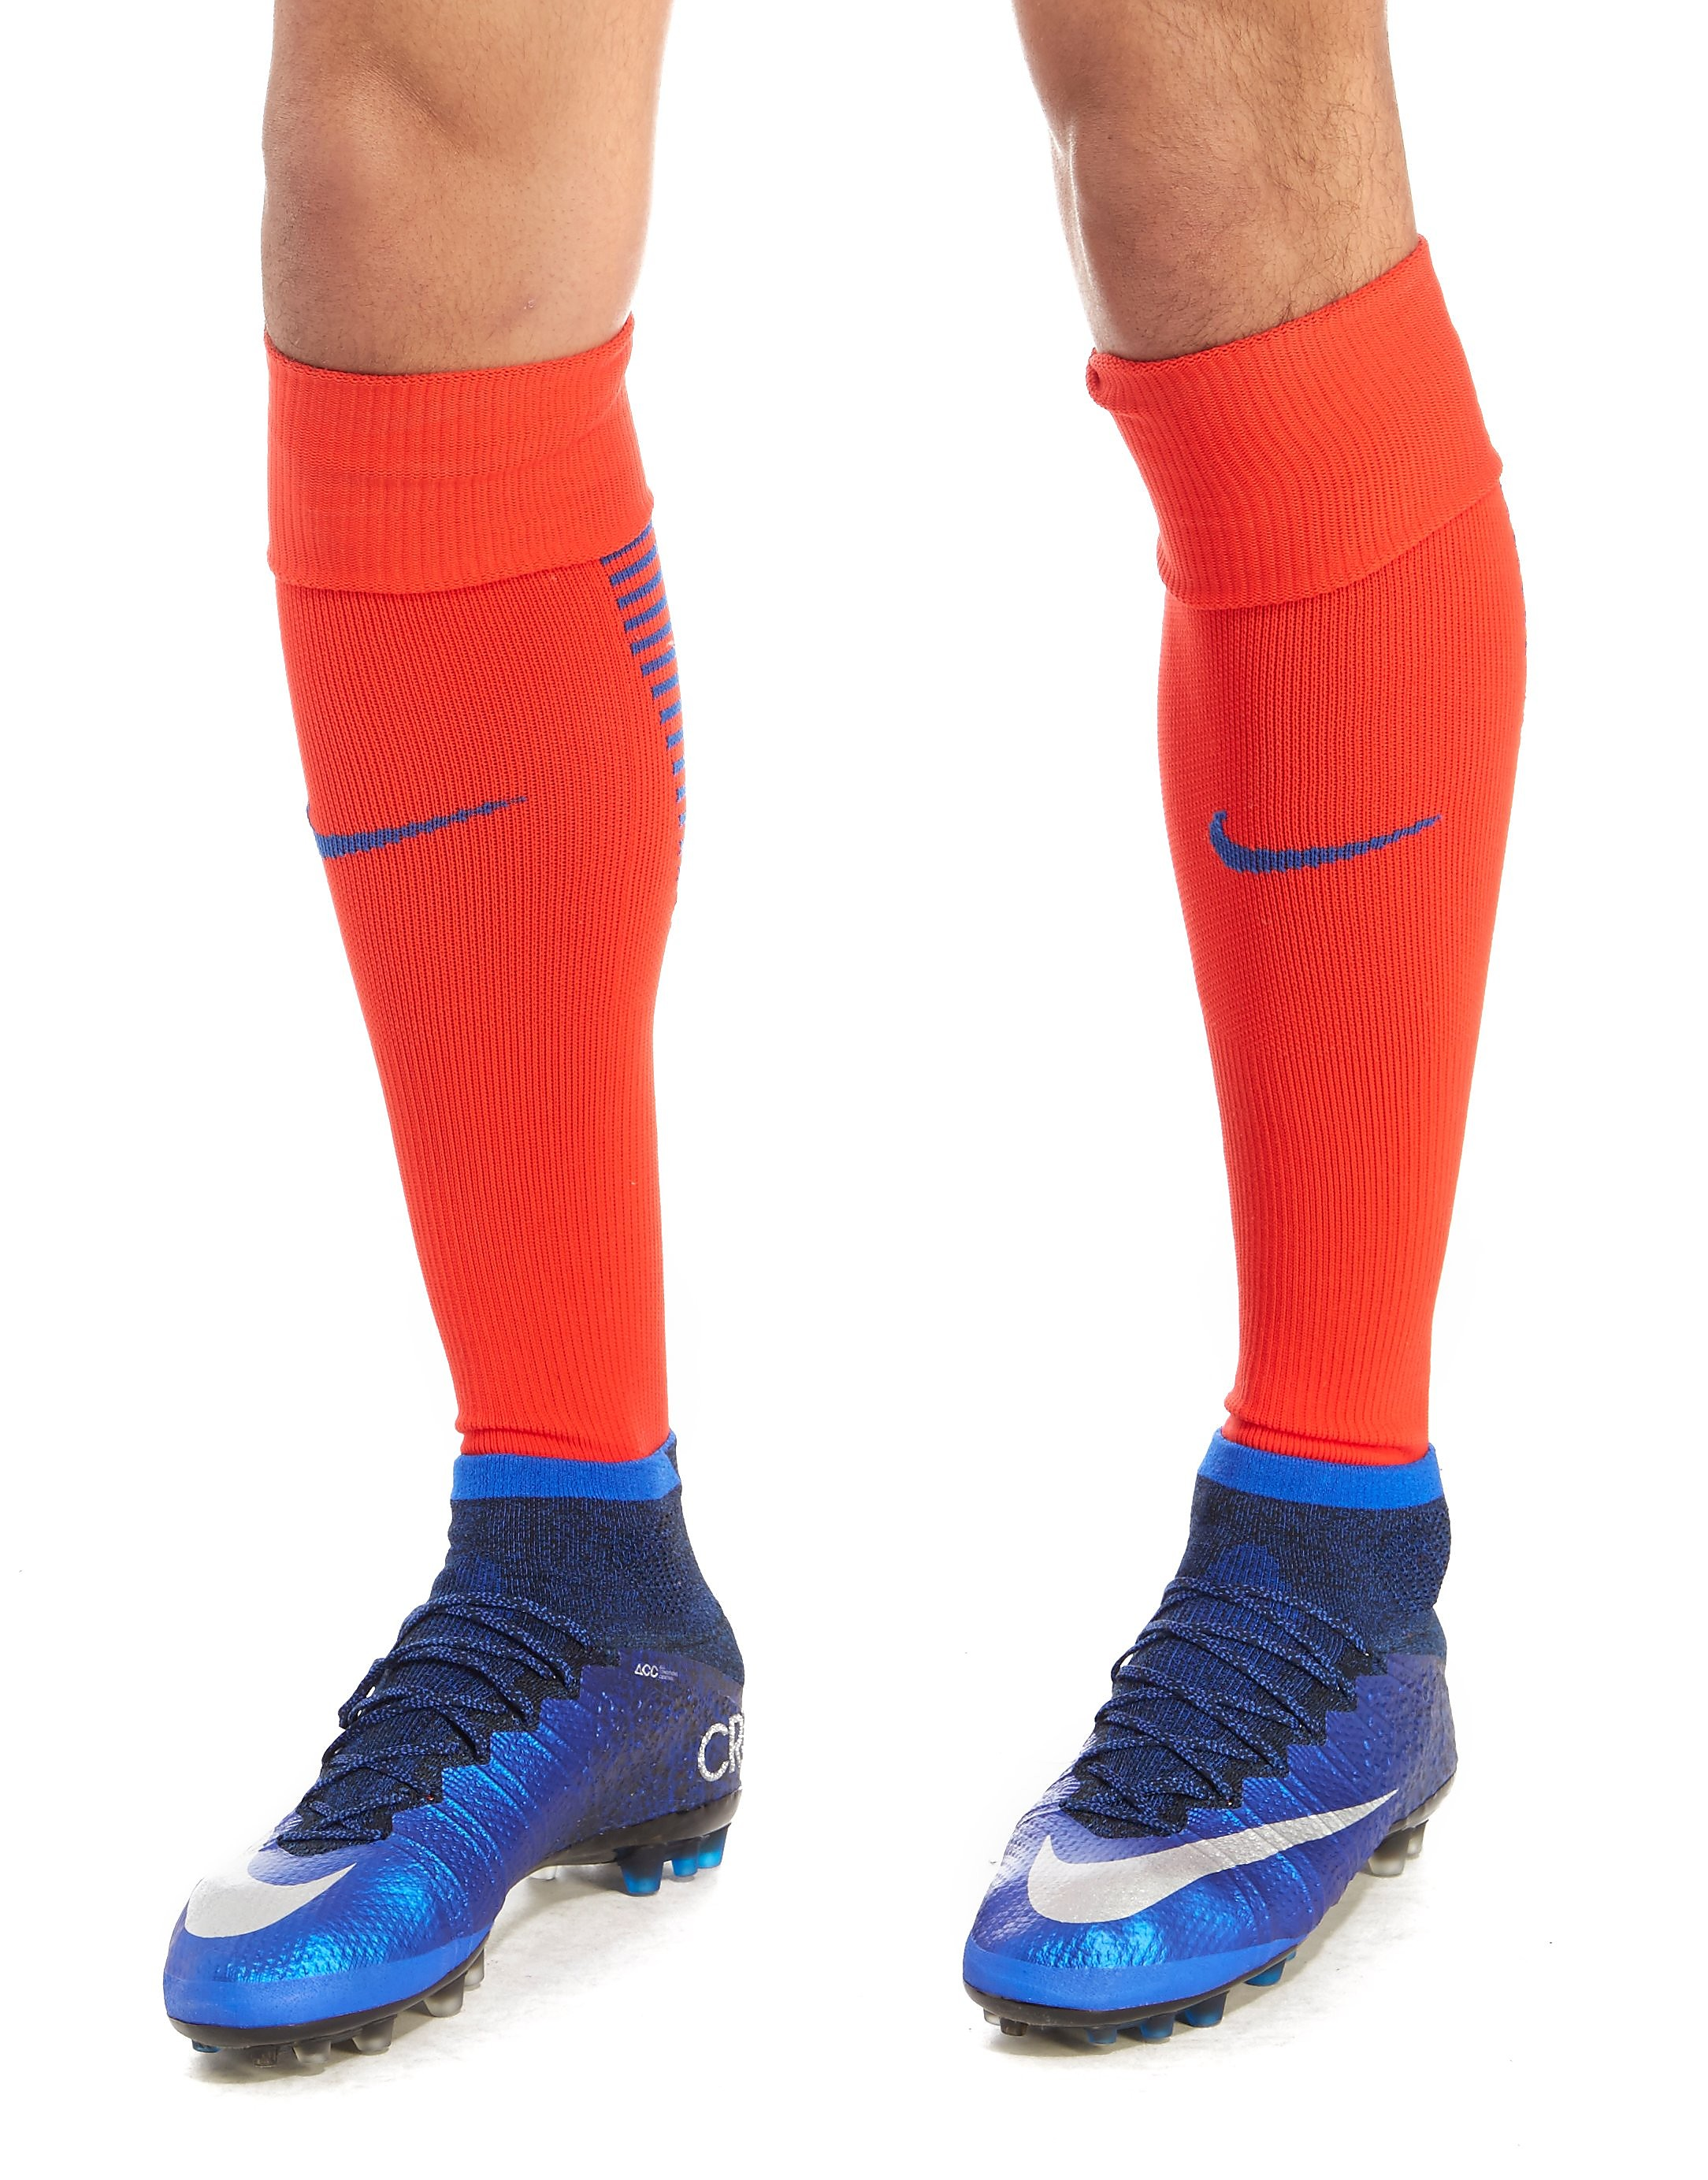 Nike England 2016 Home Socks